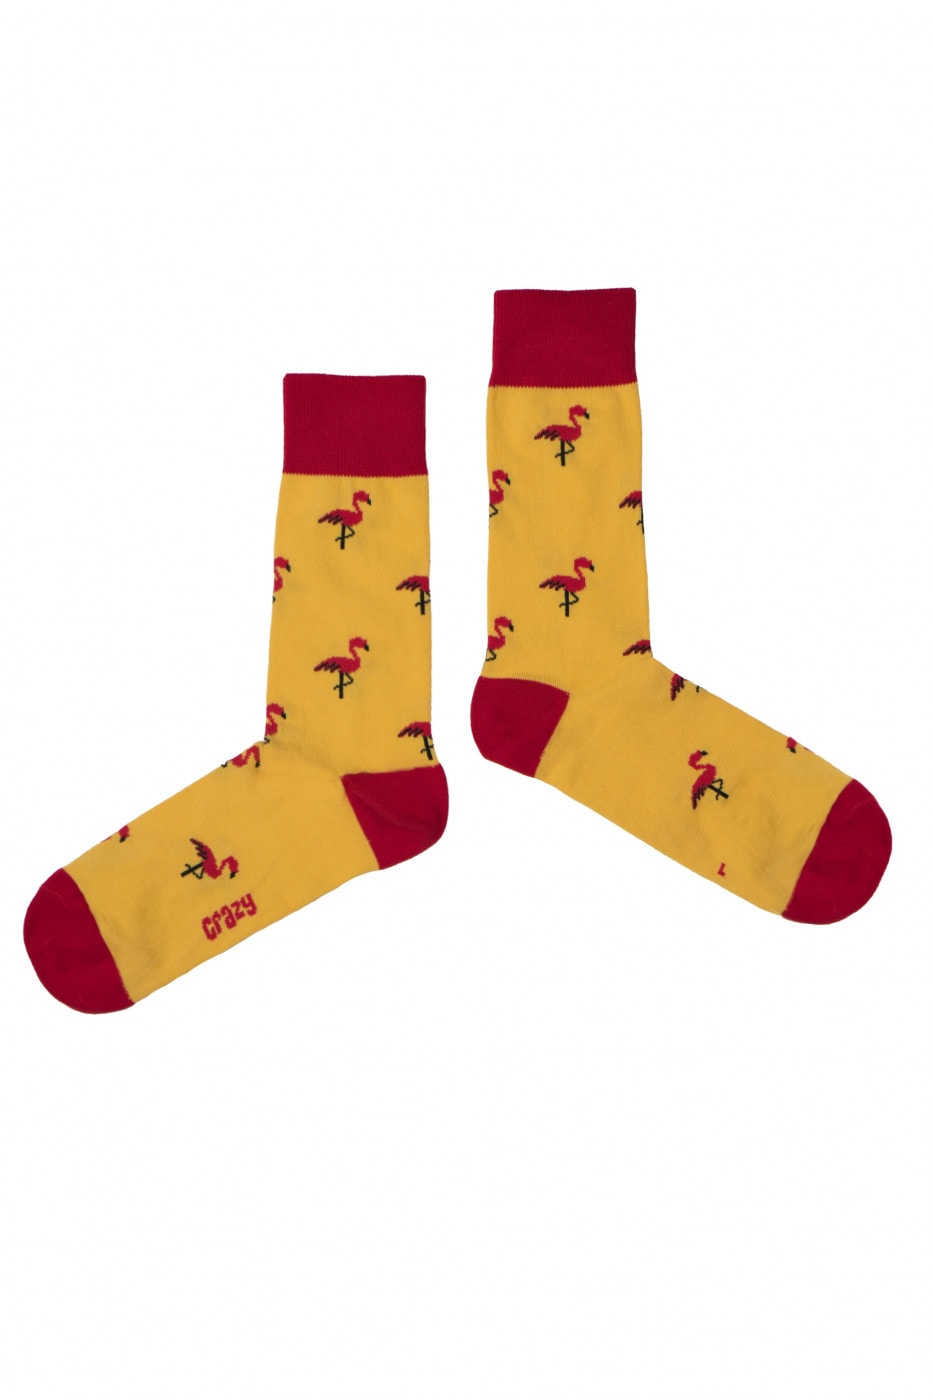 Crazy Socks Unisex's Socks Hot Flamingo